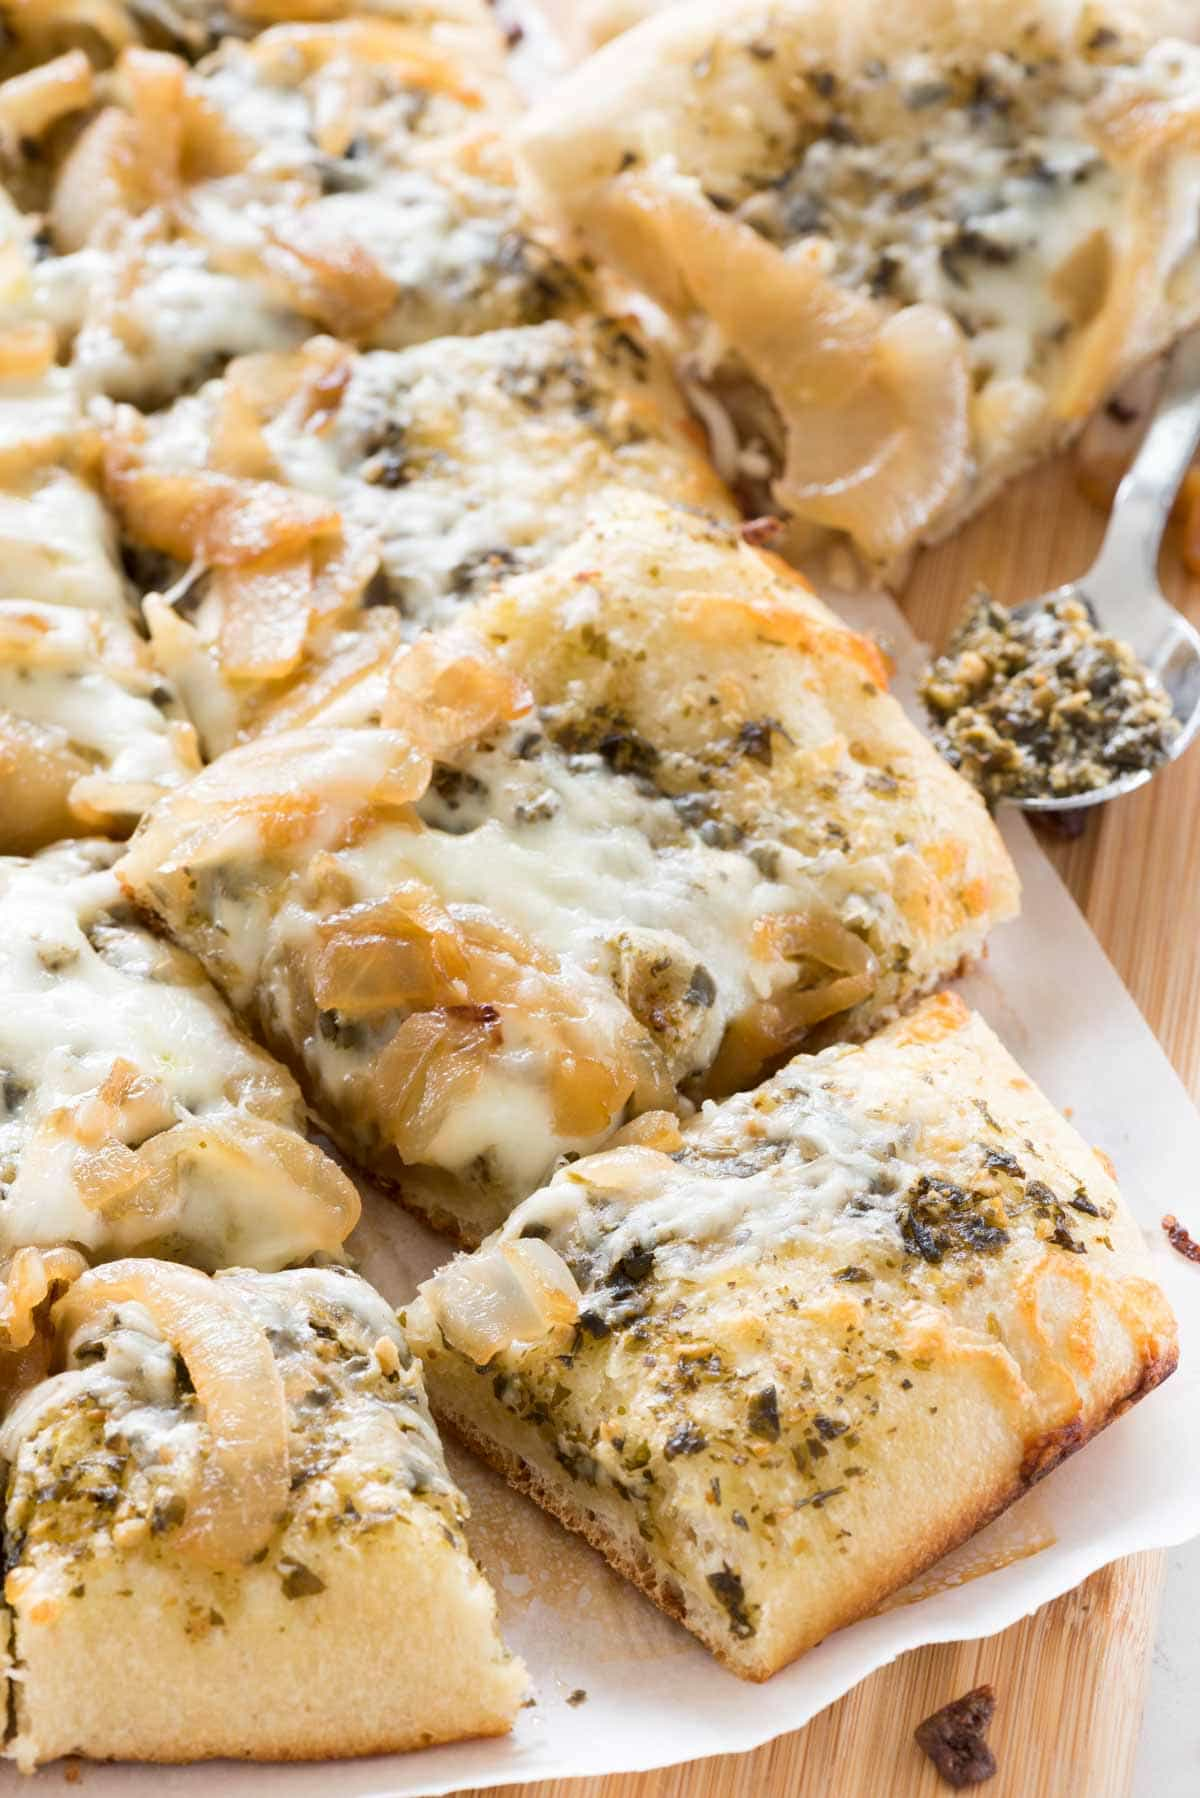 Caramelized Onion Pesto Flatbread Pizza - this EASY 4 ingredient pizza recipe is the perfect appetizer. Pesto, caramelized onions, and mozzarella baked onto a pizza crust - every time I make this people rave about it!